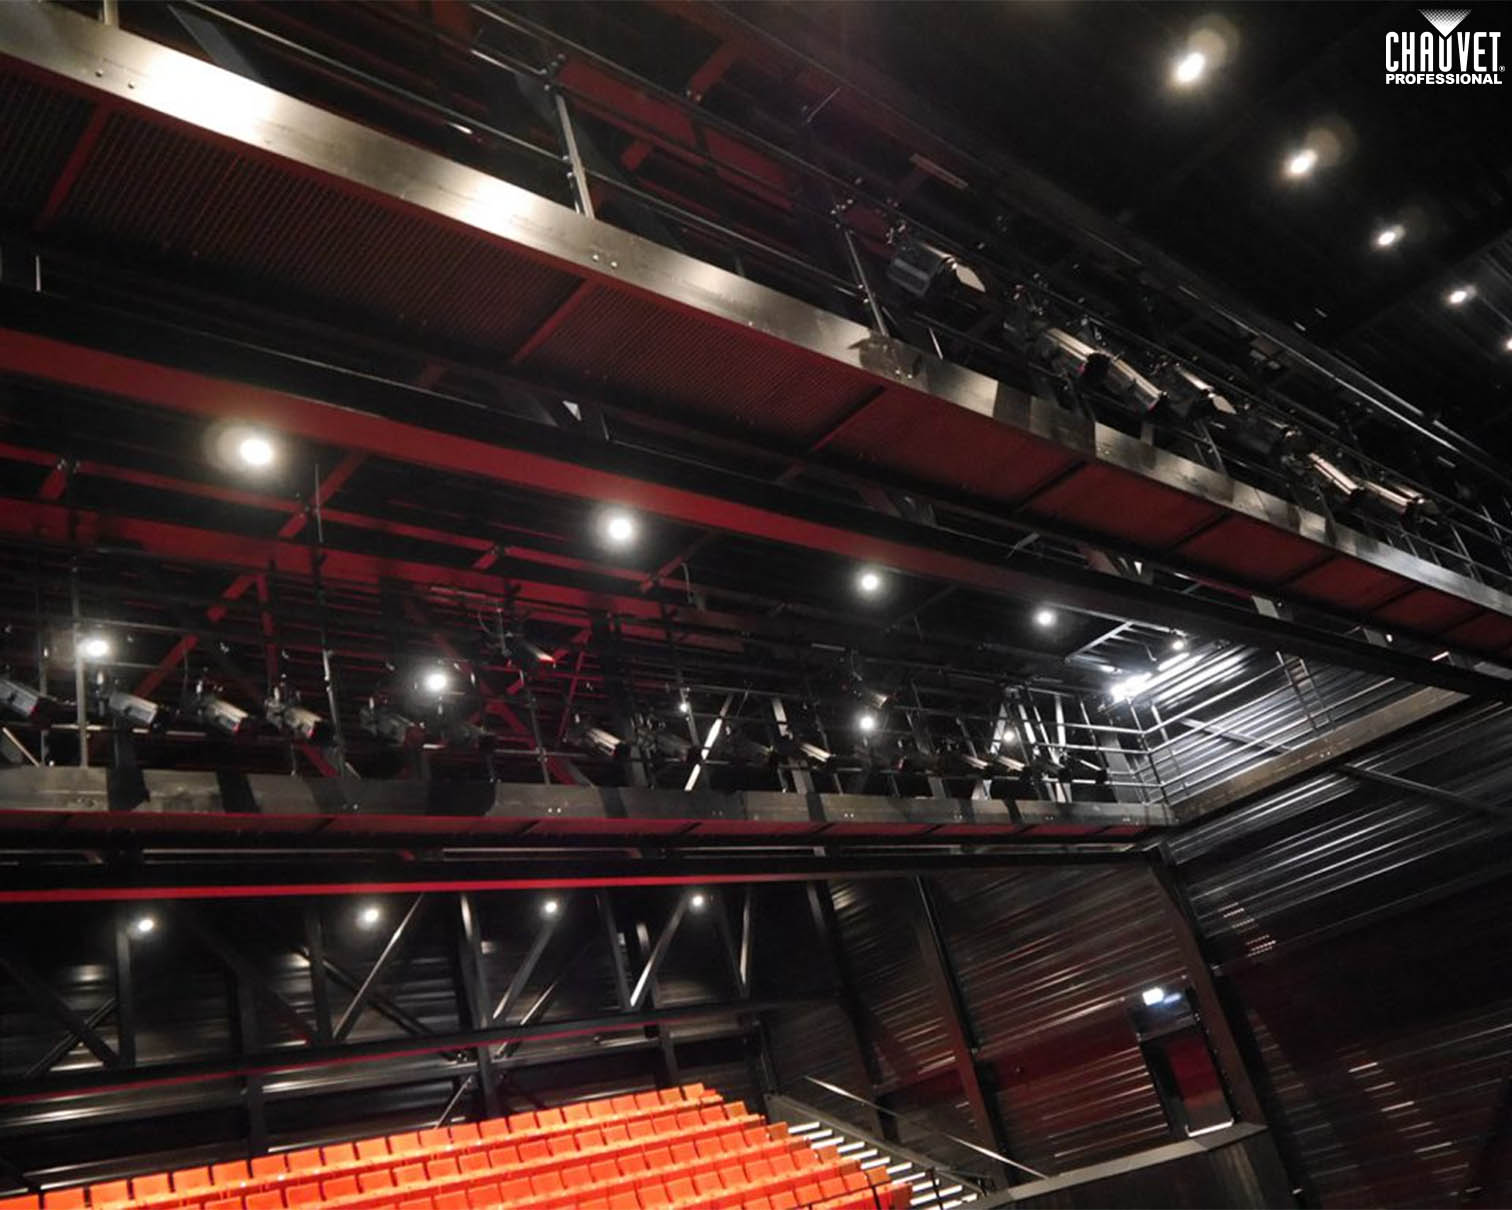 Theatre De Blauwe Kei Becomes First 100% LED Theatre In The Netherlands With CHAUVET Pro Ovations